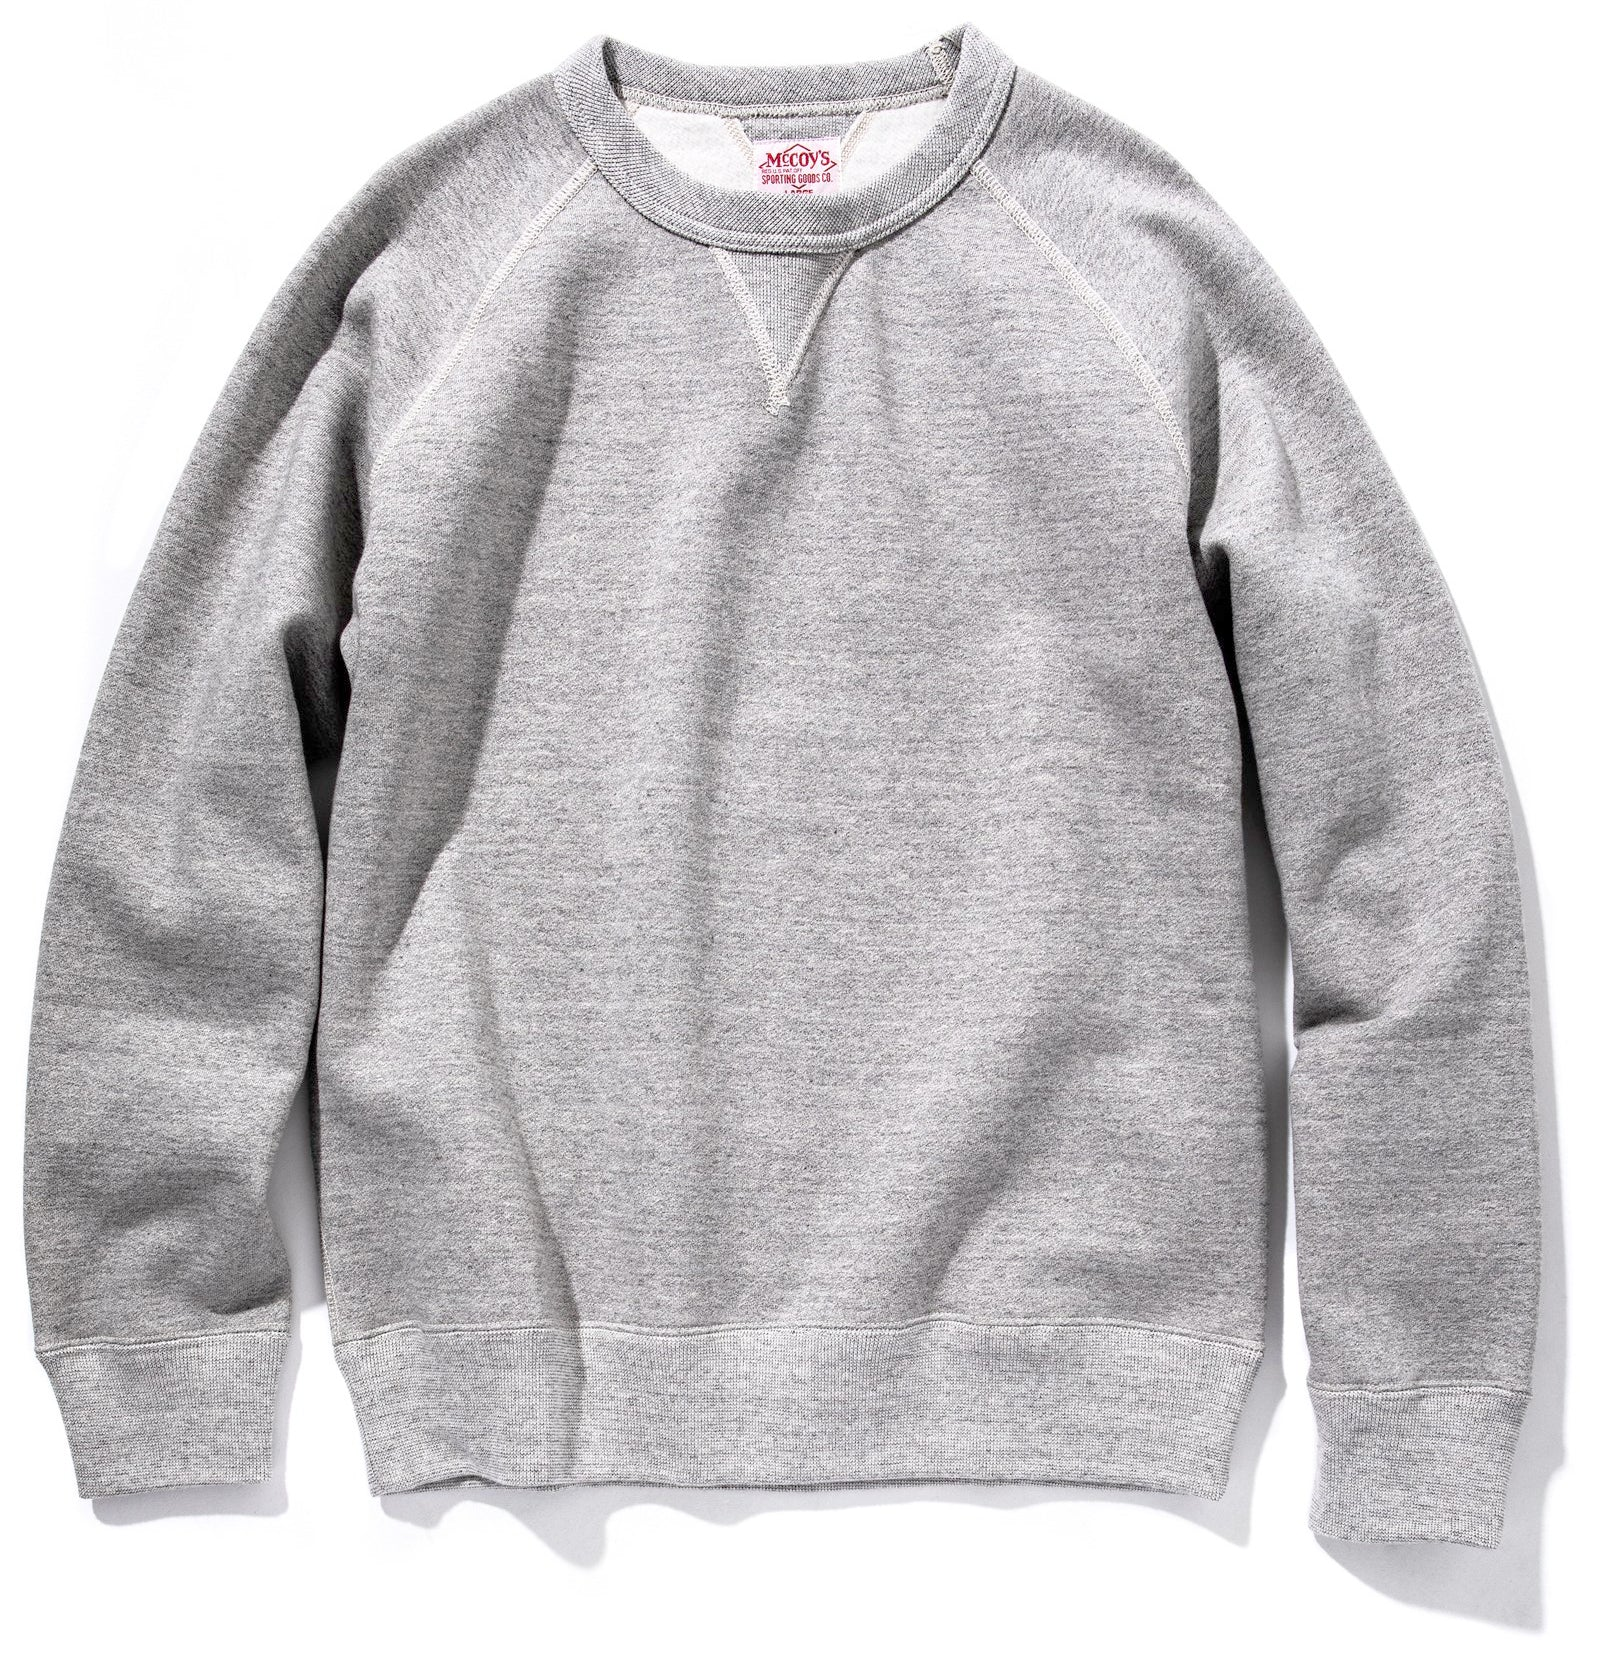 10oz. SWEATSHIRT